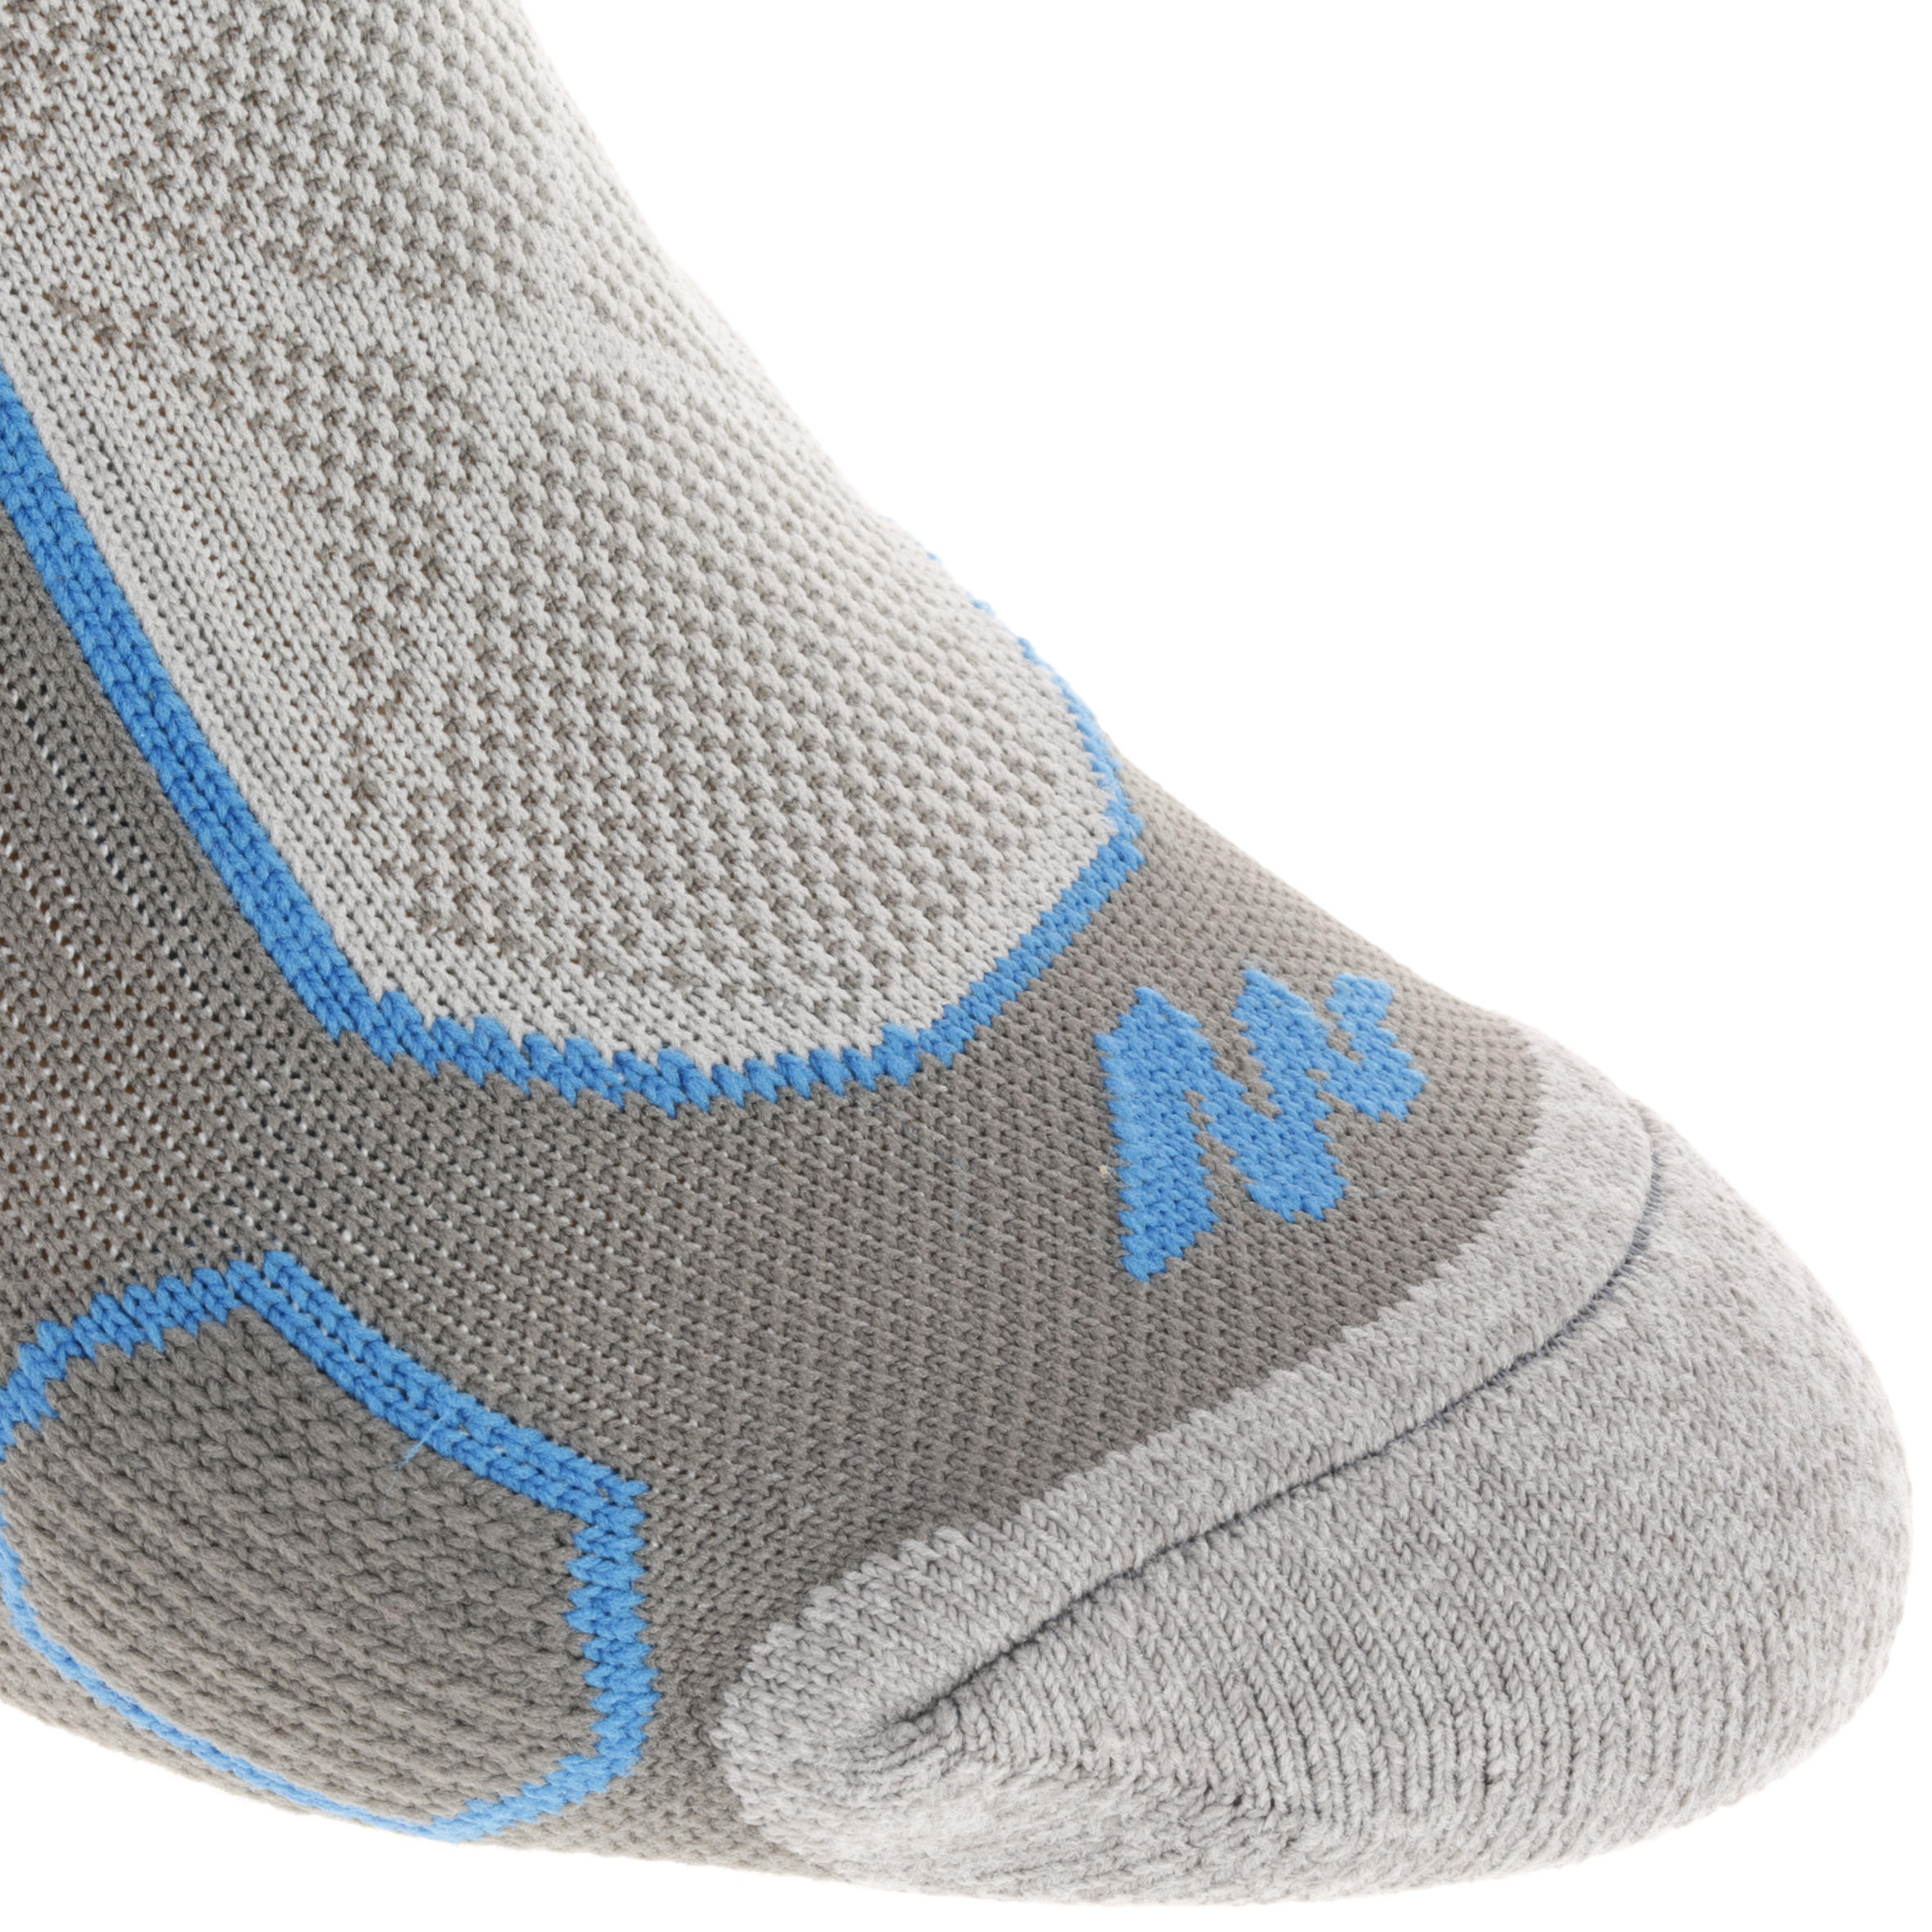 2 pairs of high length adult F500 mountain hiking socks in grey